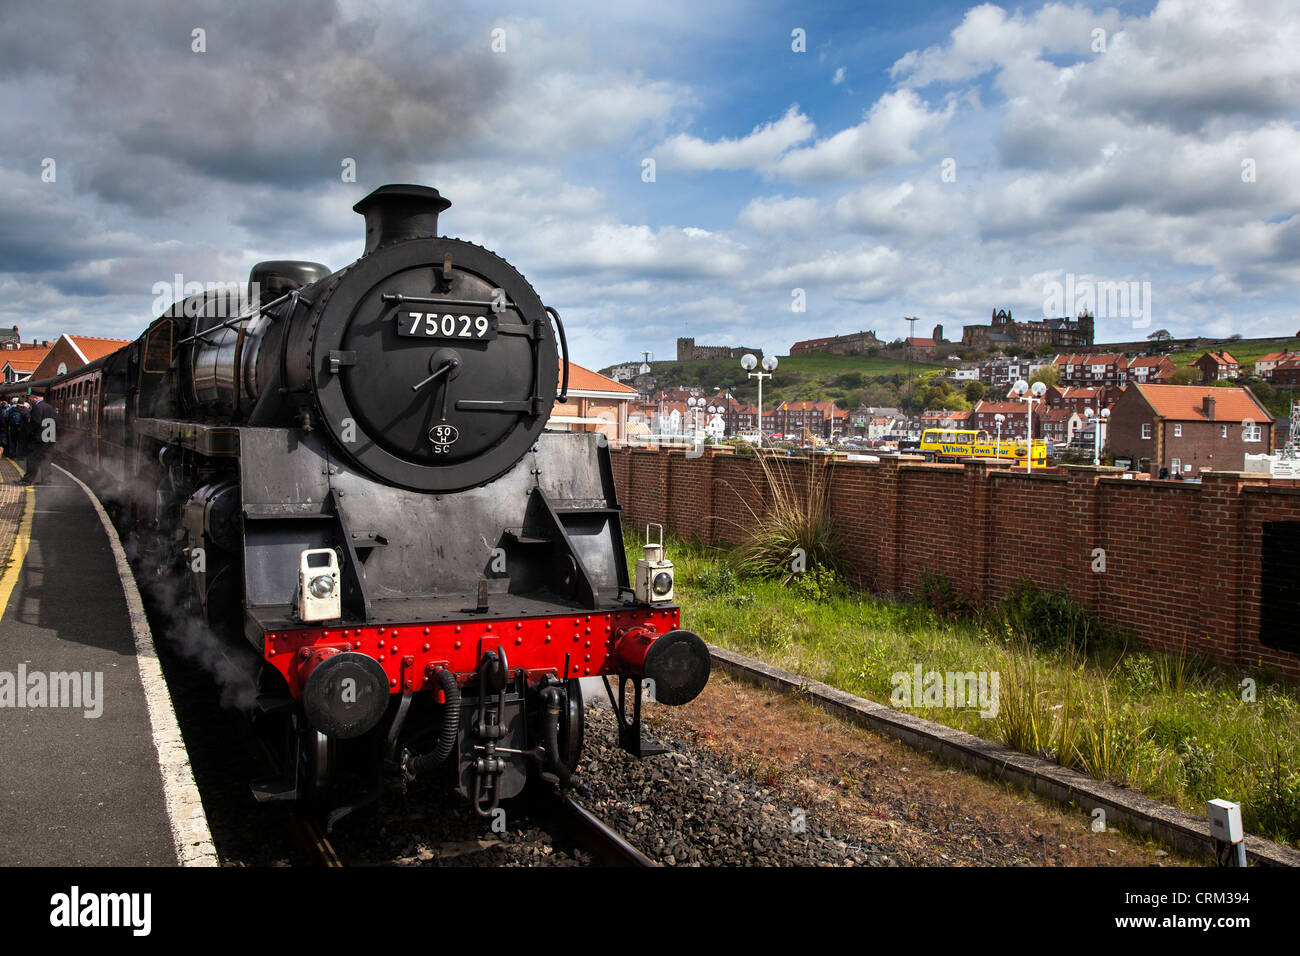 BR Standard Class 4MT No 75029 Steam Engine at Whitby, North York Moors Railway - Stock Image